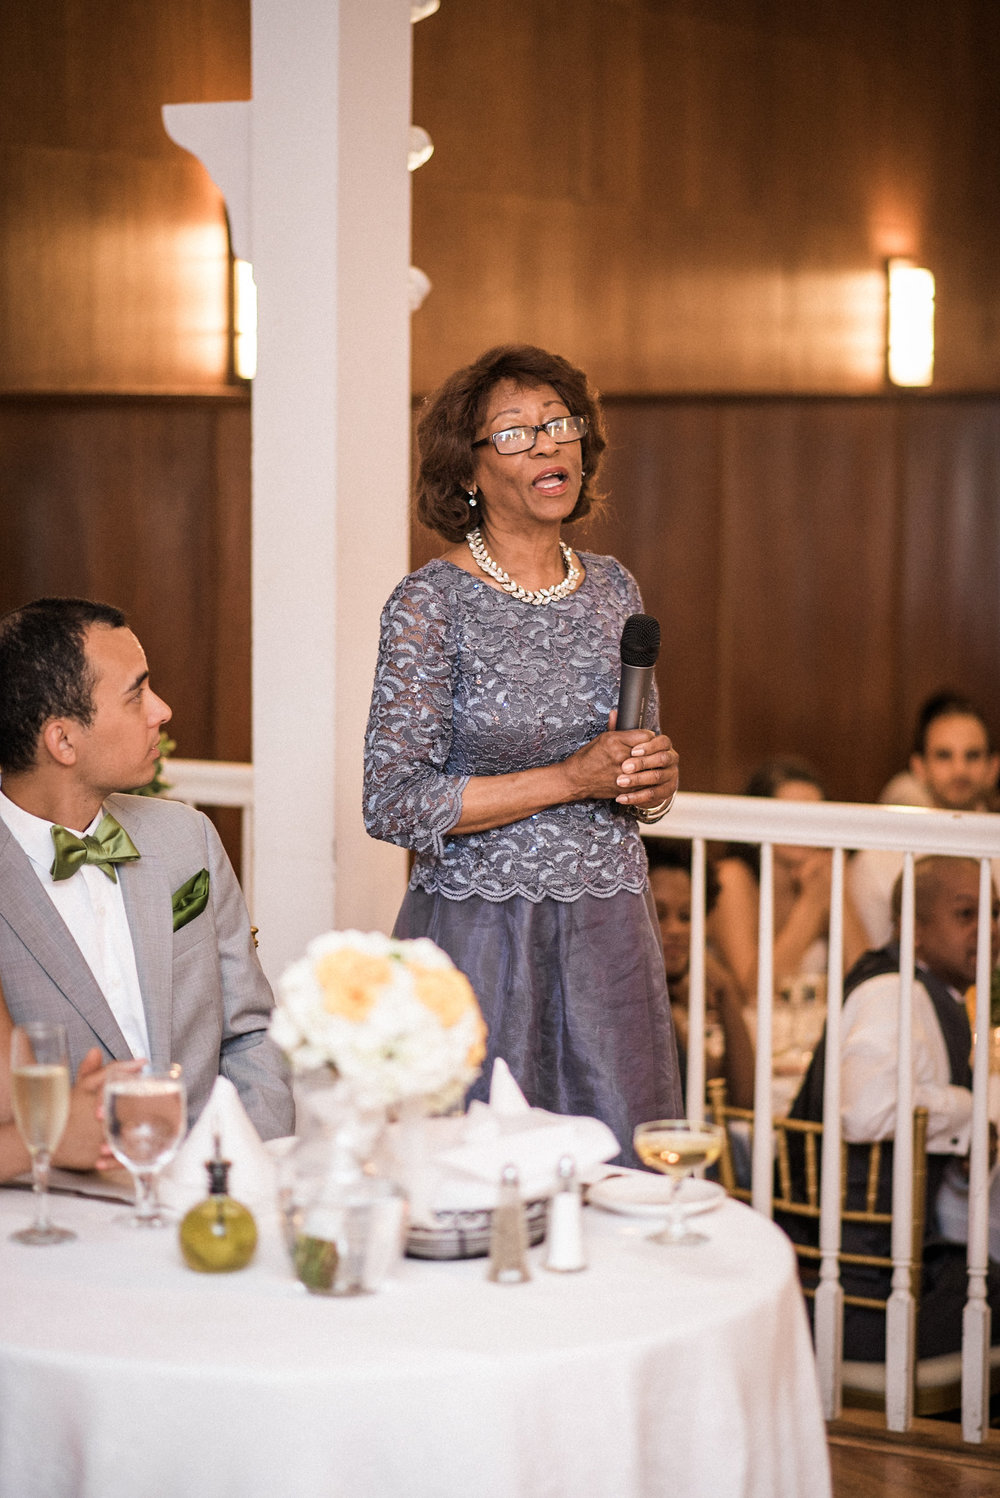 Mother making speech at wedding